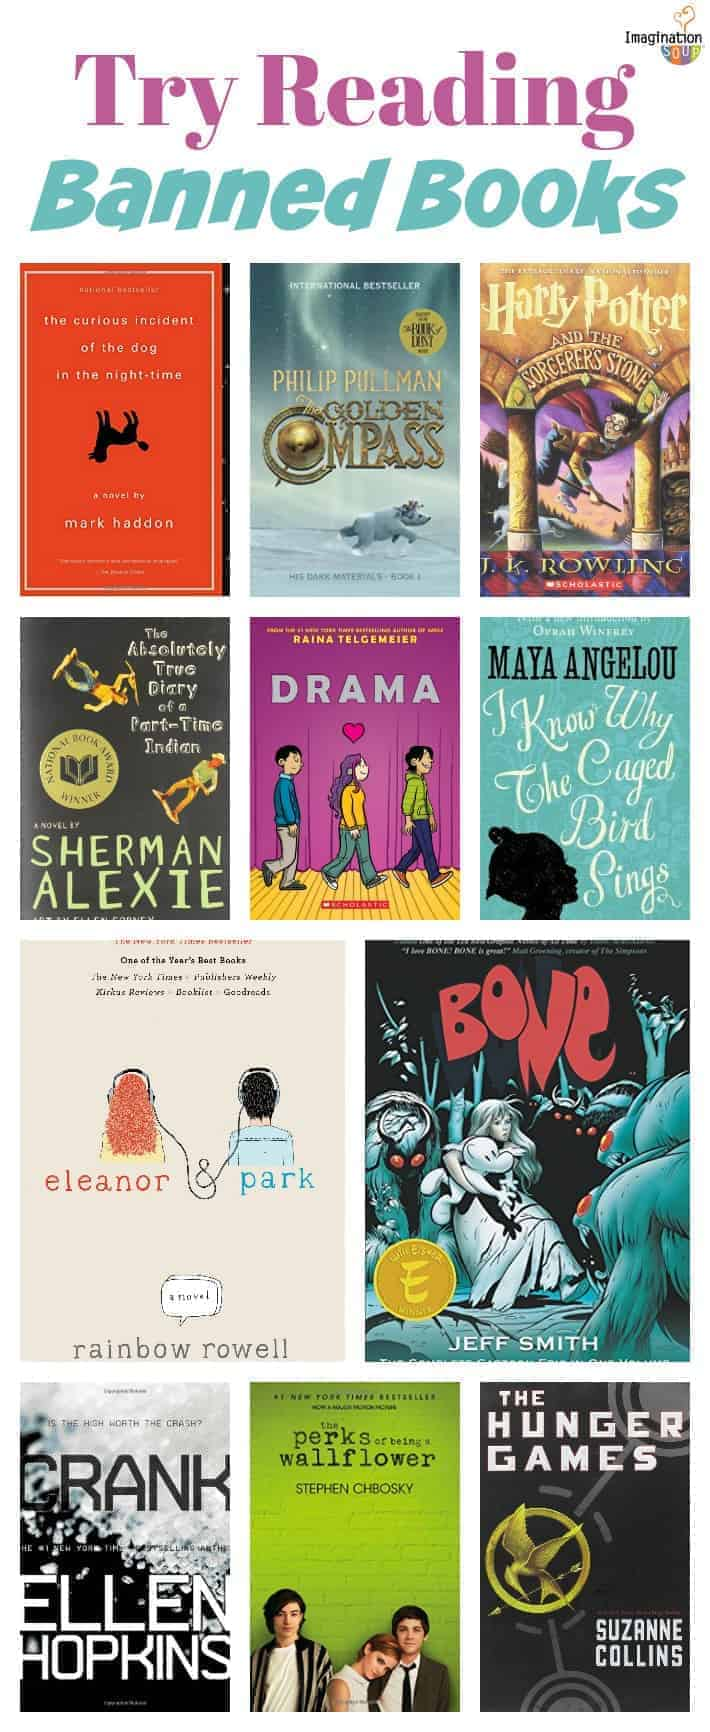 get your tweens and teens excited about reading with banned books